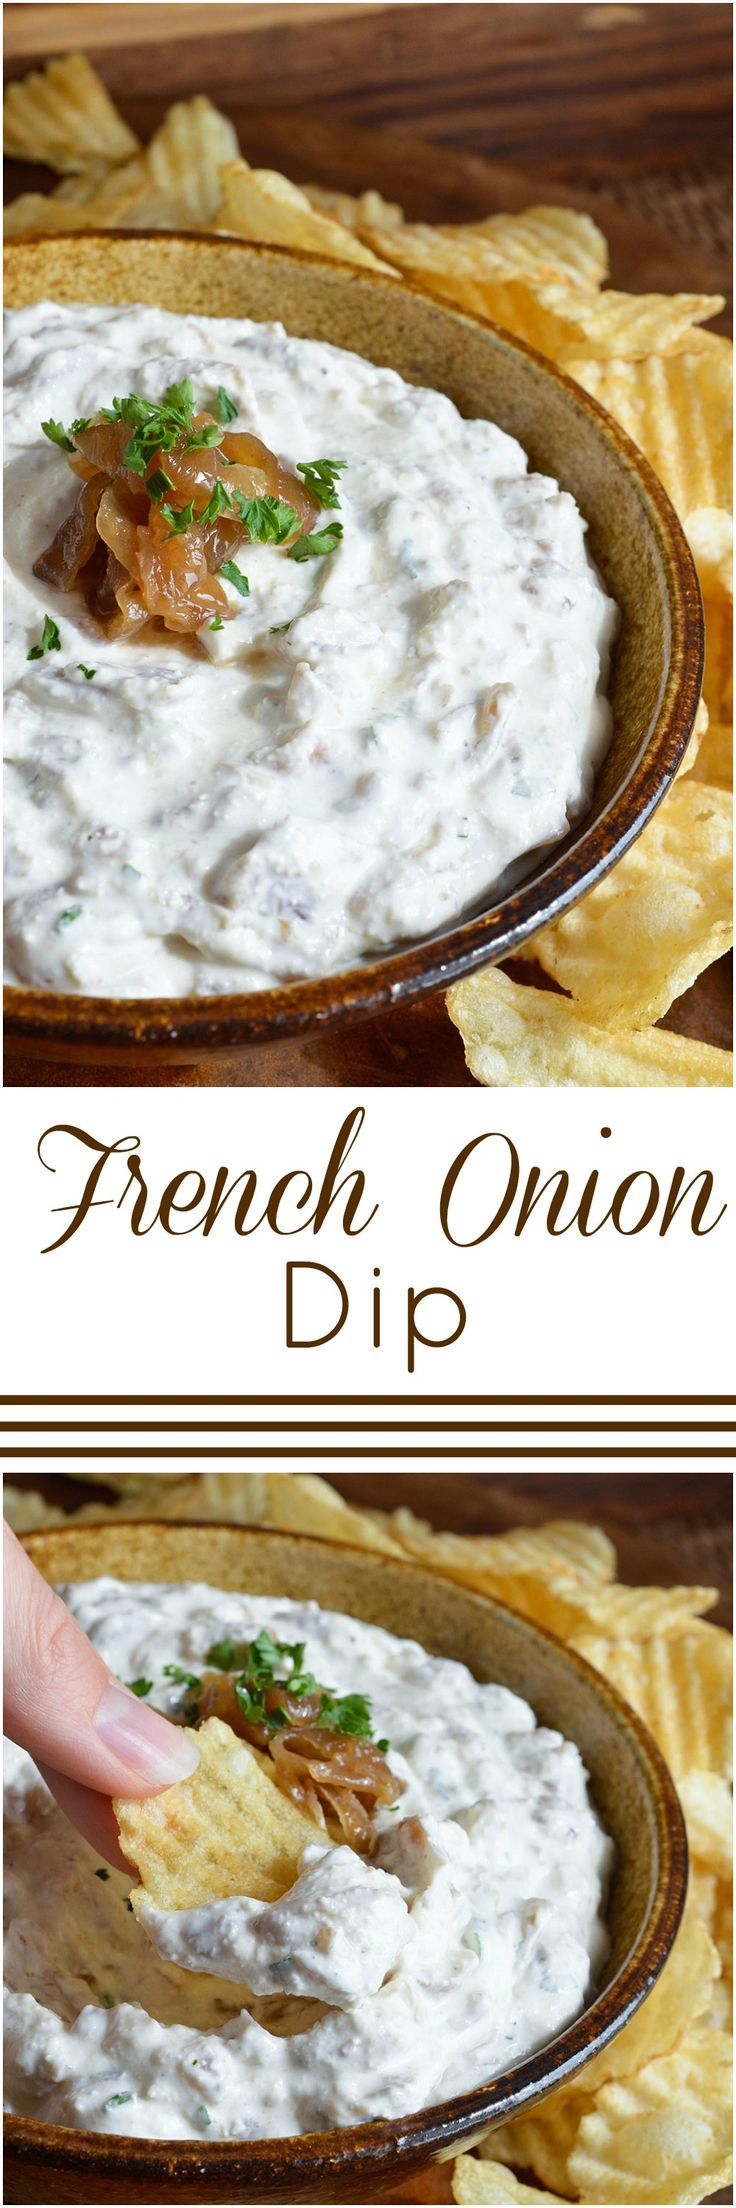 This French Onion Dip Recipe is the perfect party appetizer! Caramelized onions in a cold, creamy dip. #appetizer #dip http://wonkywonderful.com